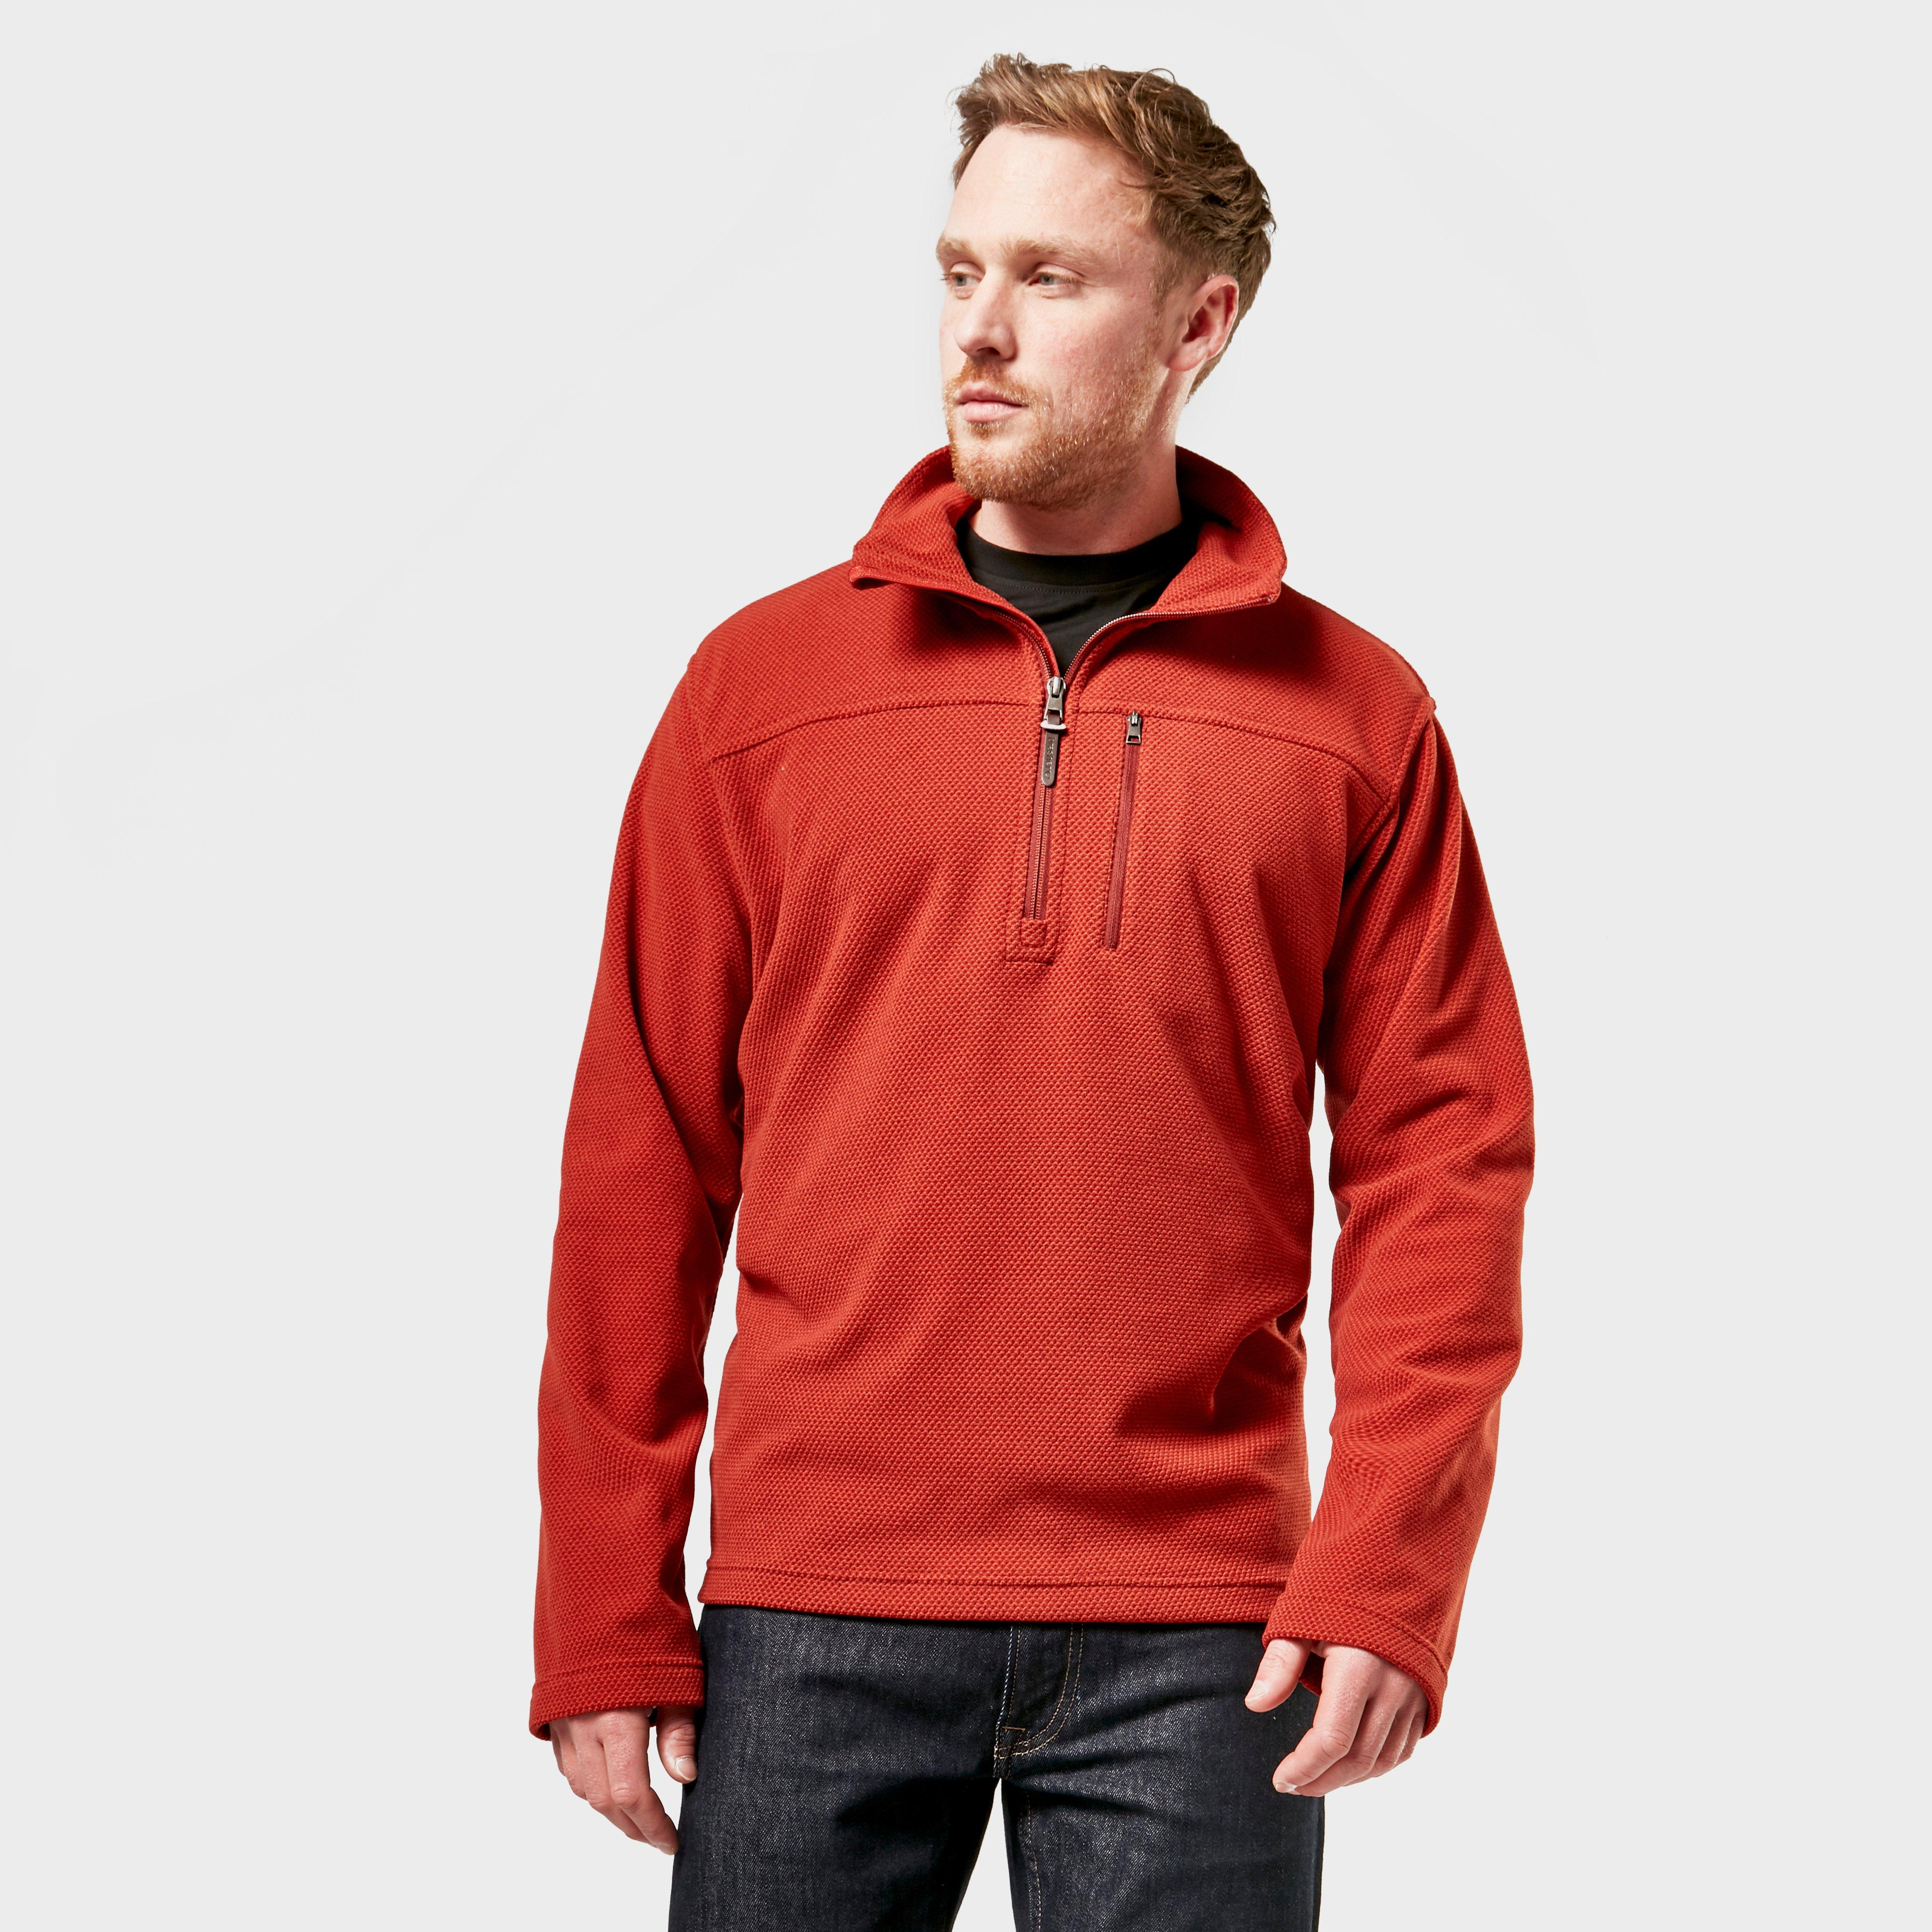 Brasher Mens Fountains Half Zip Fleece - Red/red  Red/red